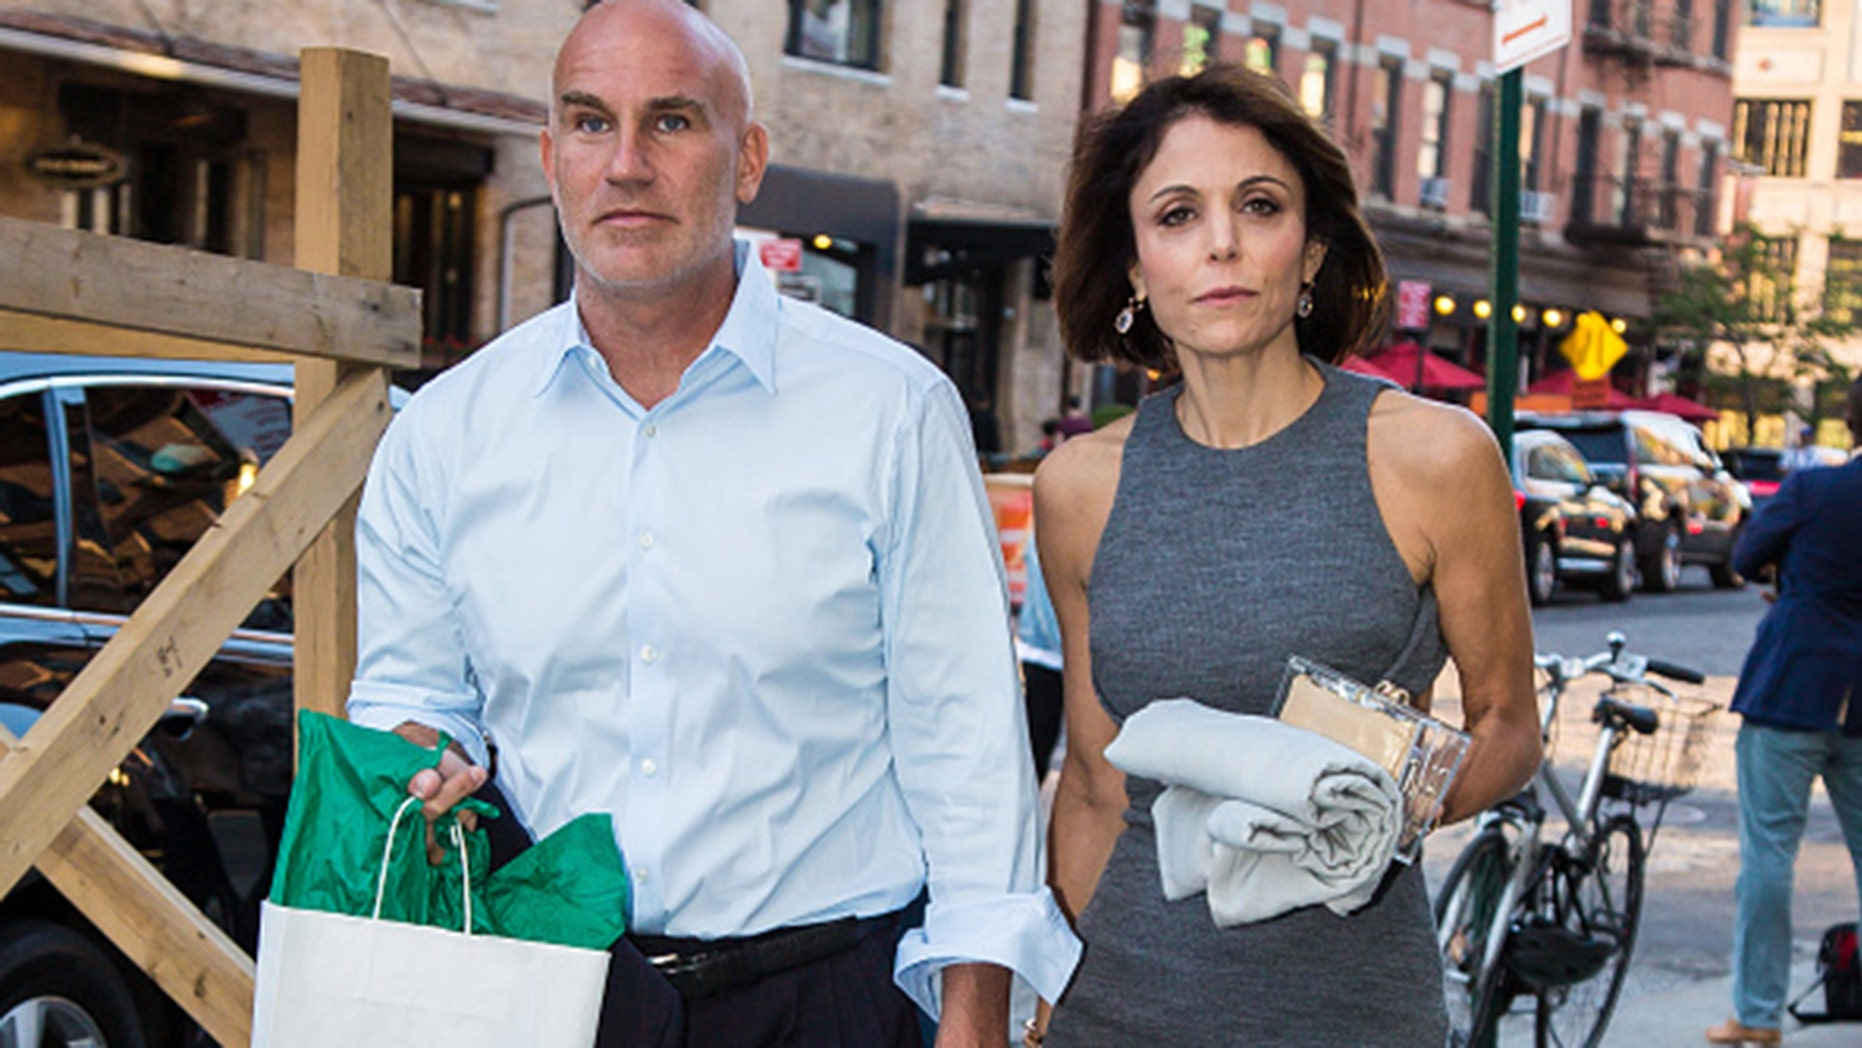 Bethenny Frankel and Dennis Shields are seen leaving SoHo House on June 14, 2016 in New York, New York.  (Alessio Botticelli/GC Images)